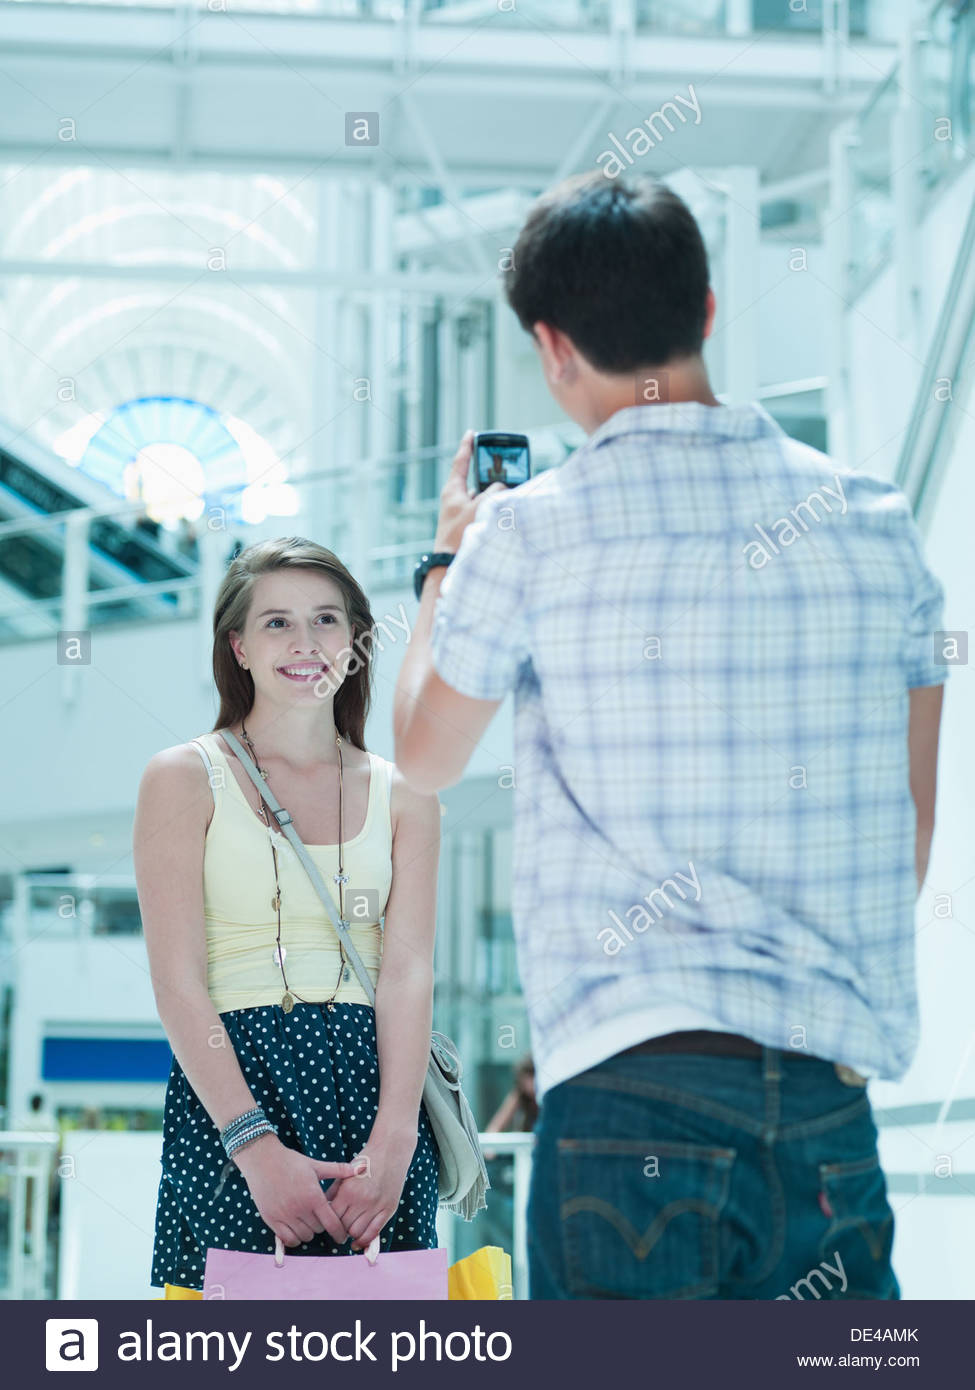 Man taking photograph of girlfriend in shopping mall Photo Stock